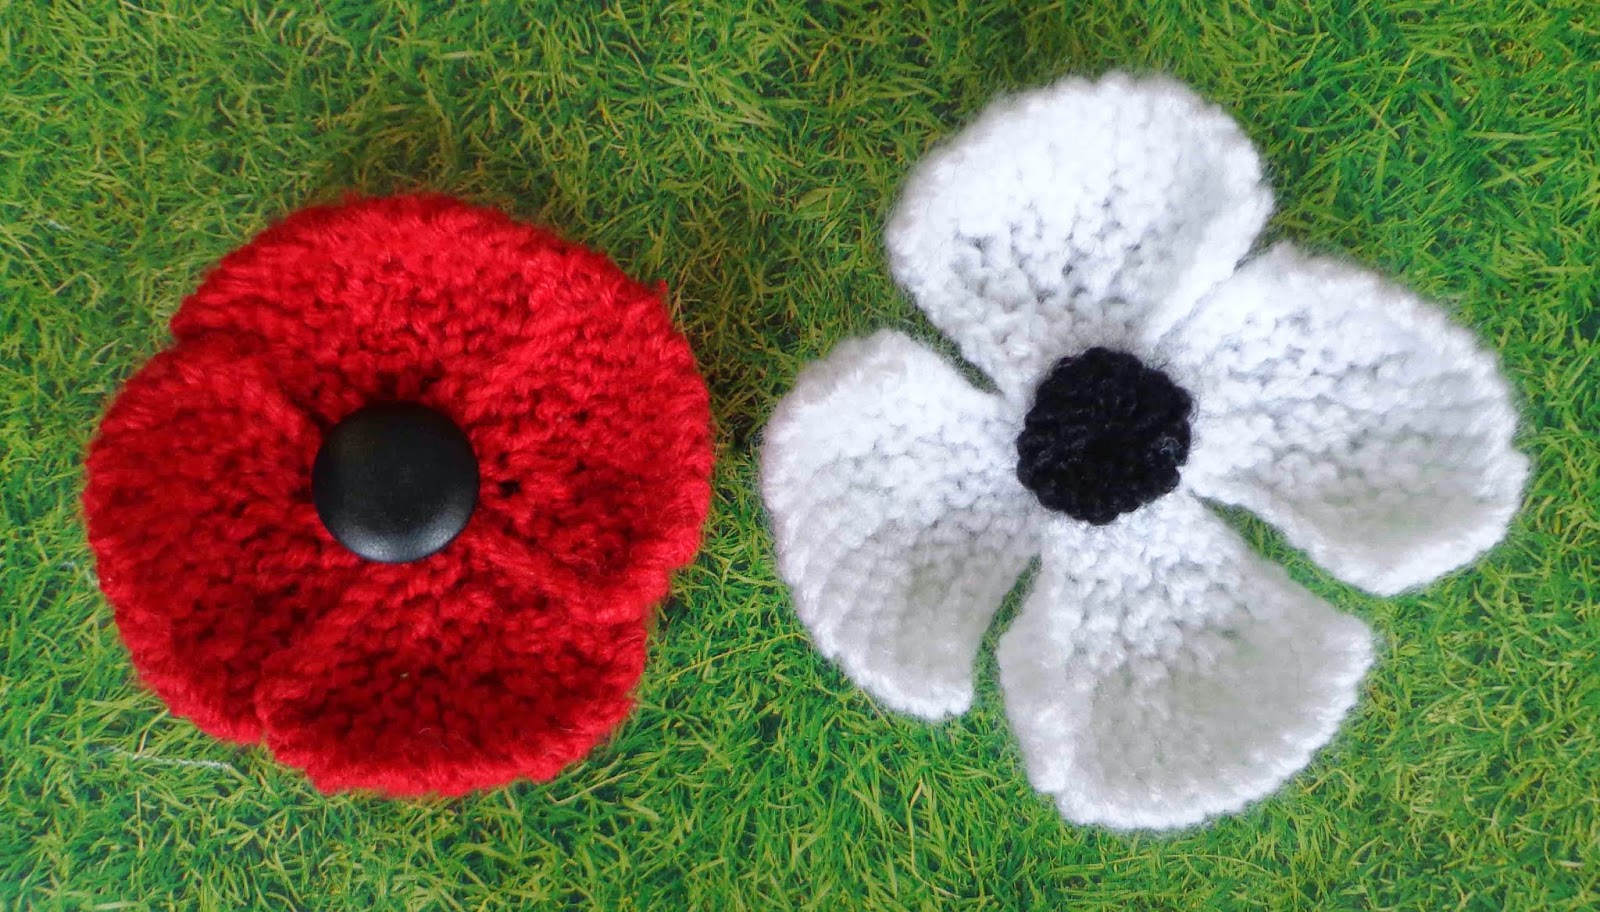 Easy Afghan Knitting Patterns Free : Hippystitch: Poppies in the Park Knitting Patterns